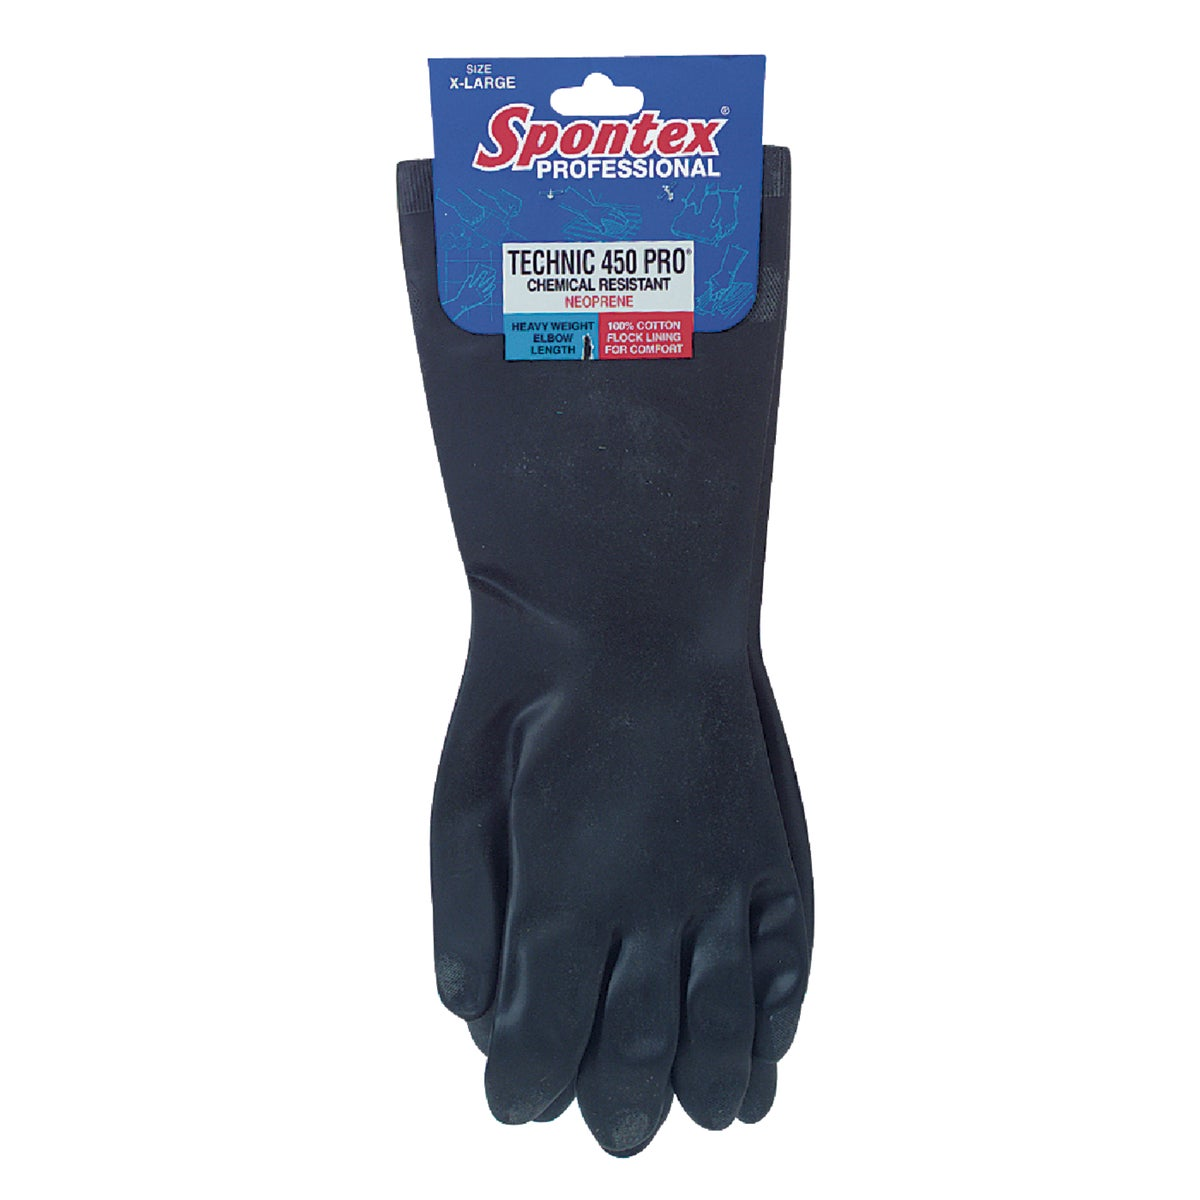 MEDIUM RUBBER GLOVES - 33557 by Lehigh Spontex